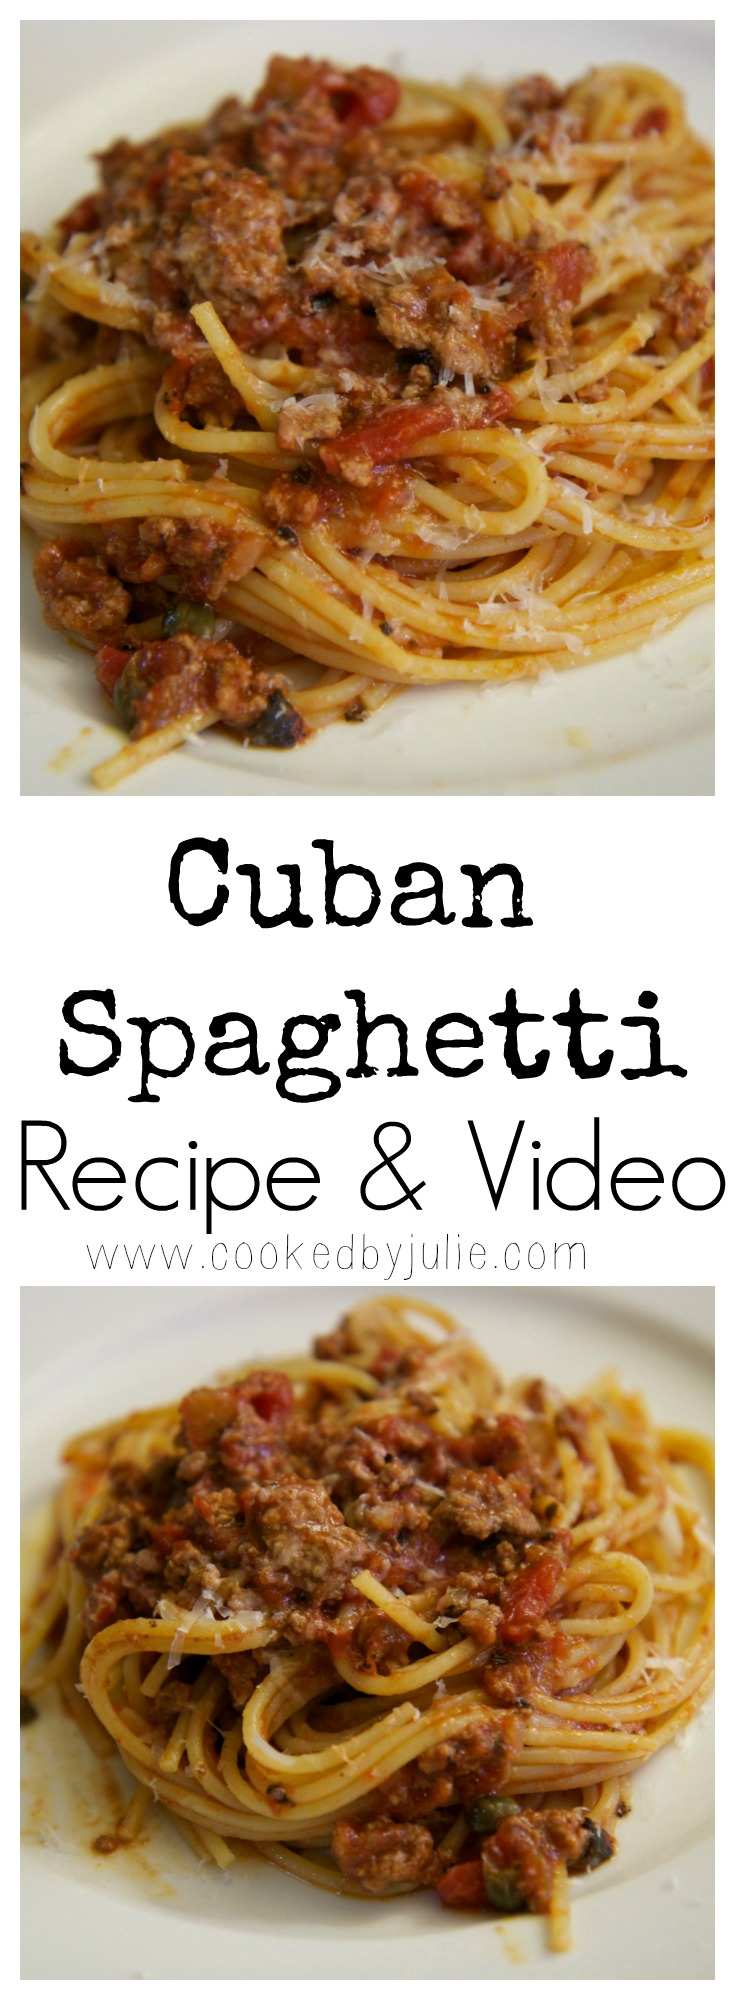 Try this Cuban Spaghetti recipe from CookedbyJulie.com